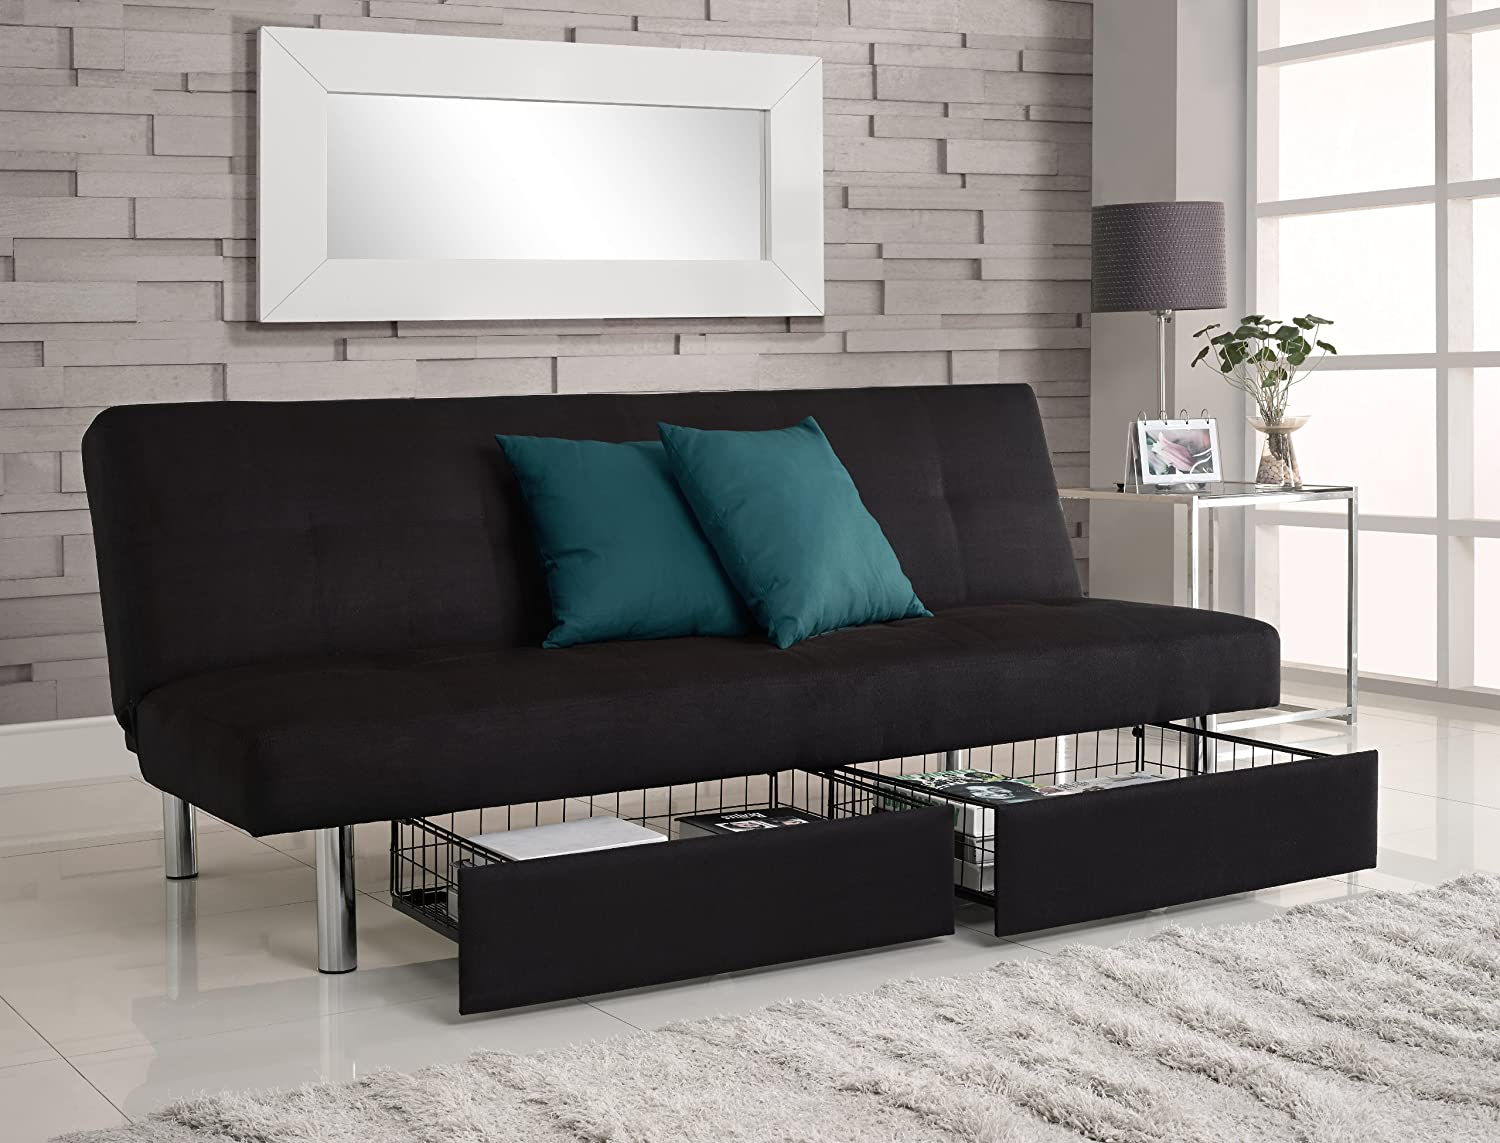 size small covered futon lounge sleep studio guest apartment for college smaller perfect dp couch porch room best is sit amazon dorm patio included furniture lounger com bedroom